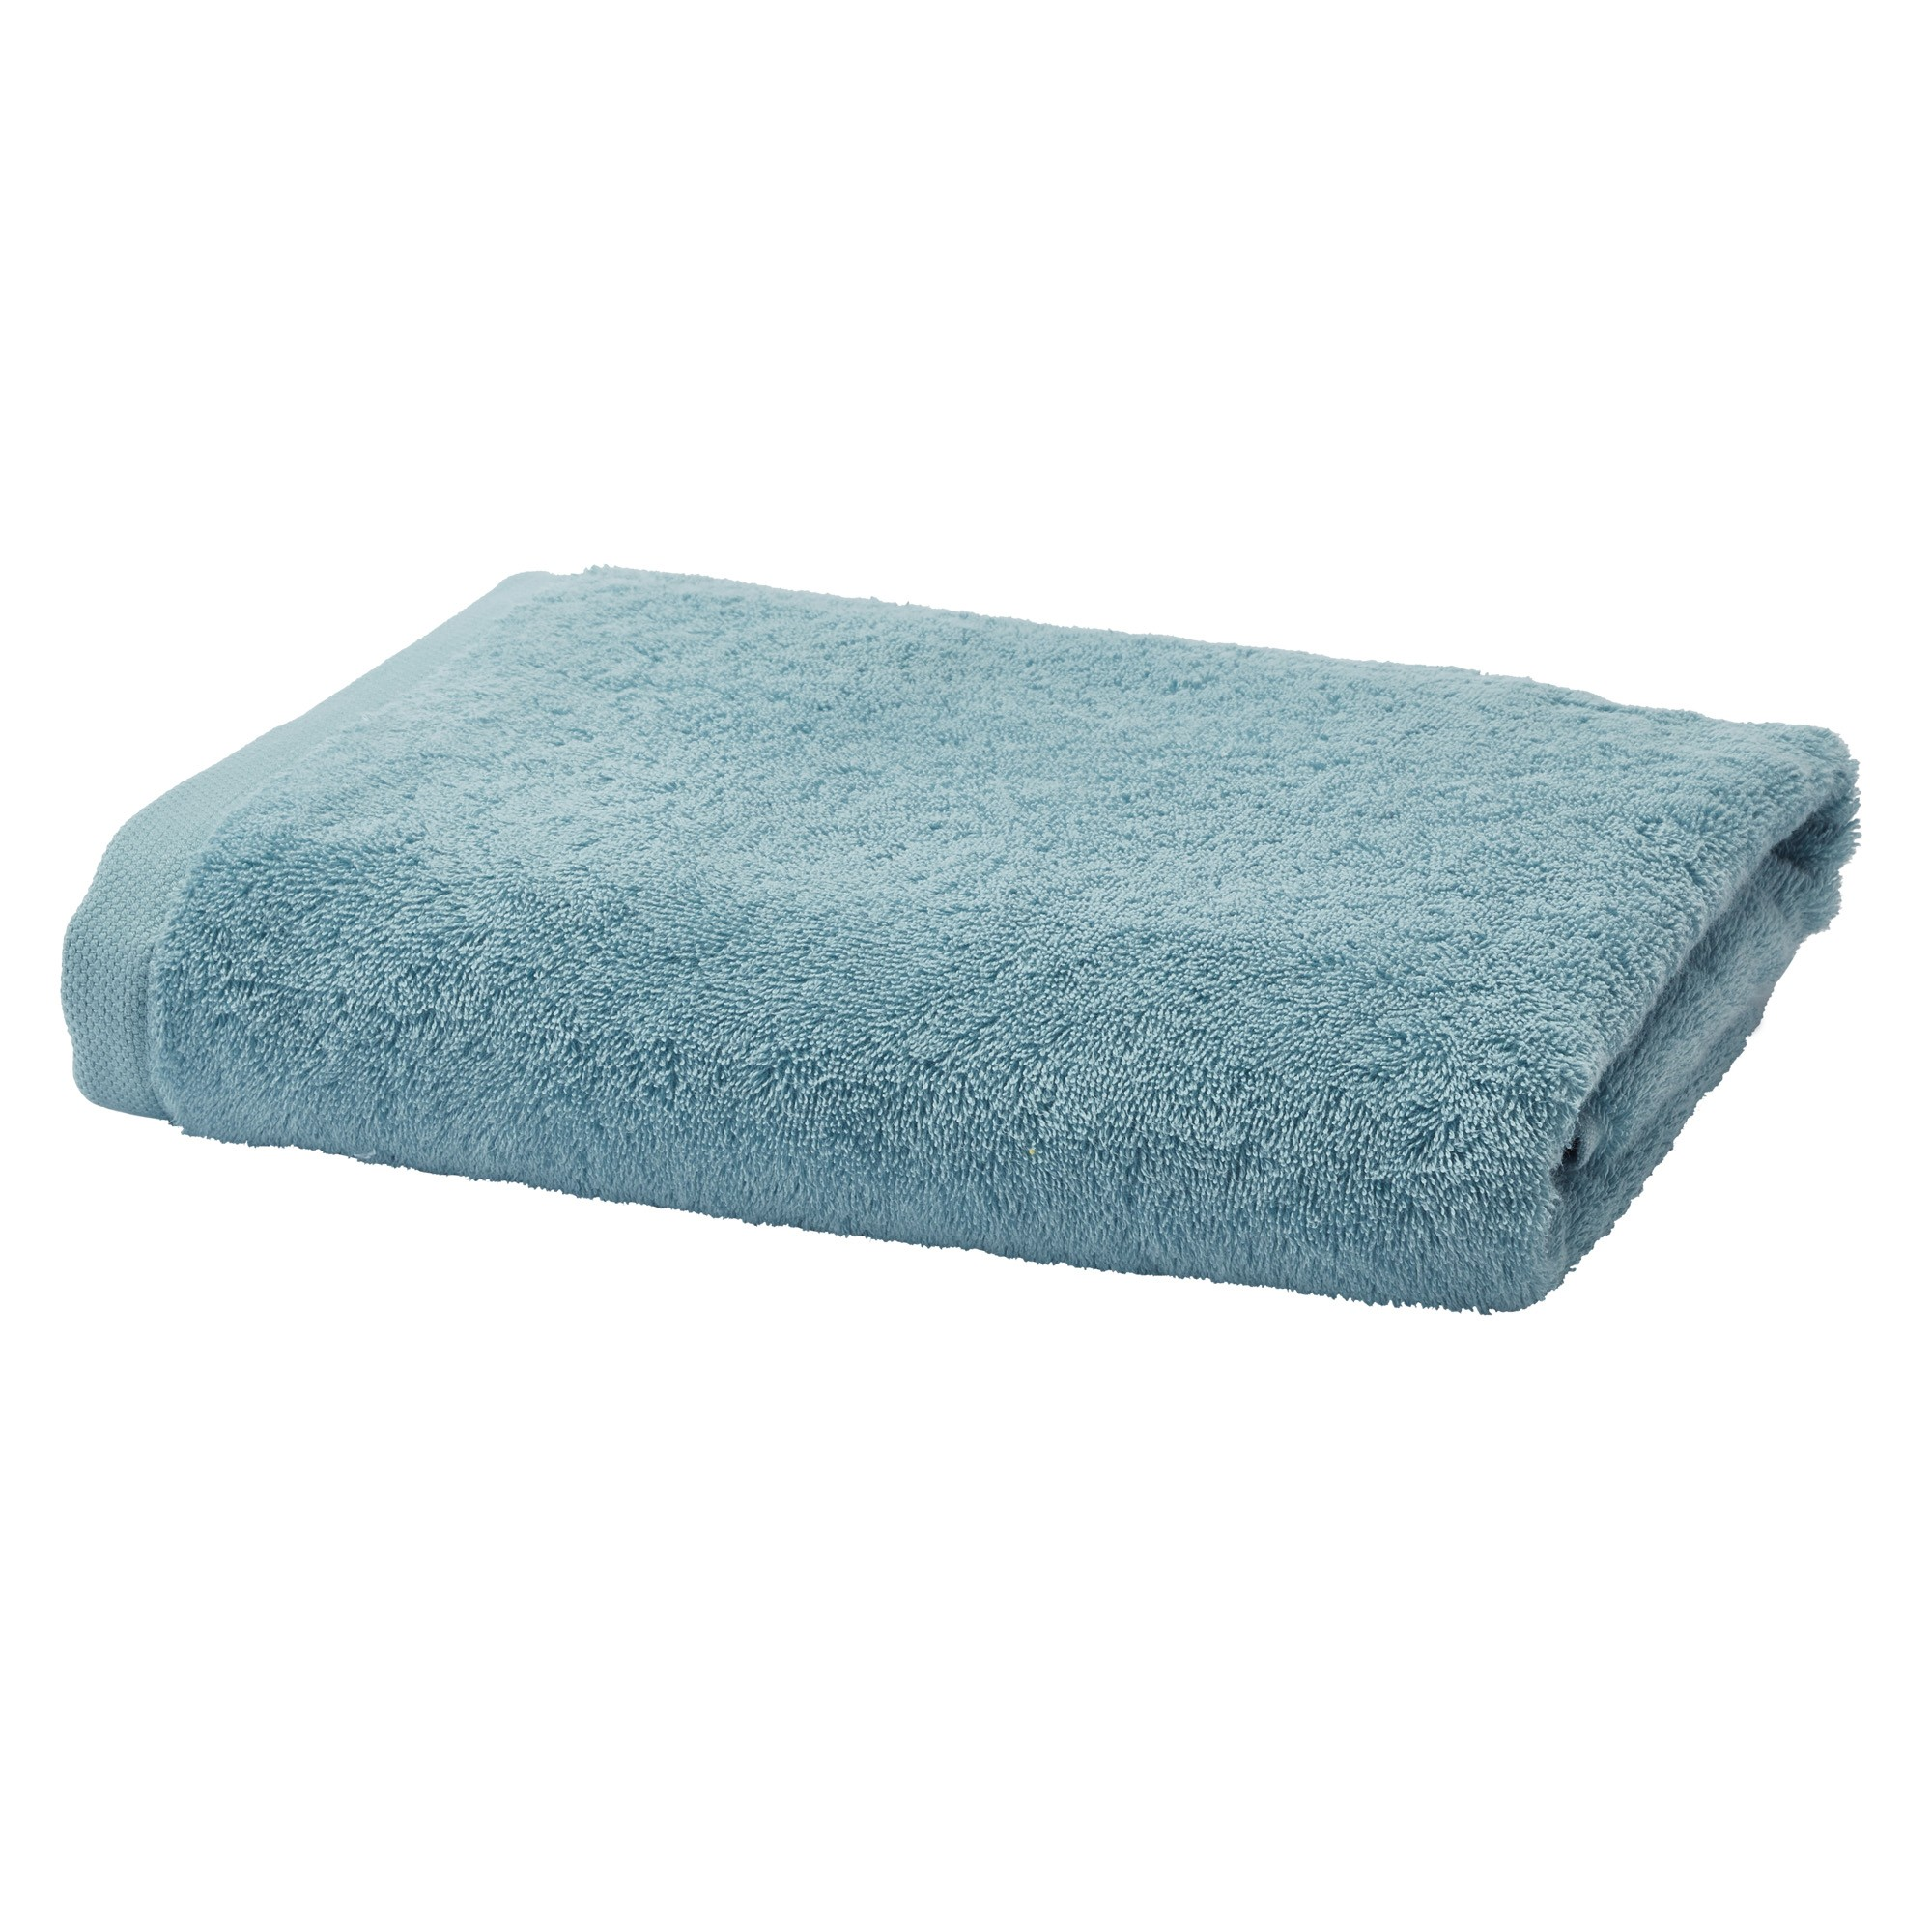 Aquanova London Egyptian Cotton Bath Towel, Aquatic